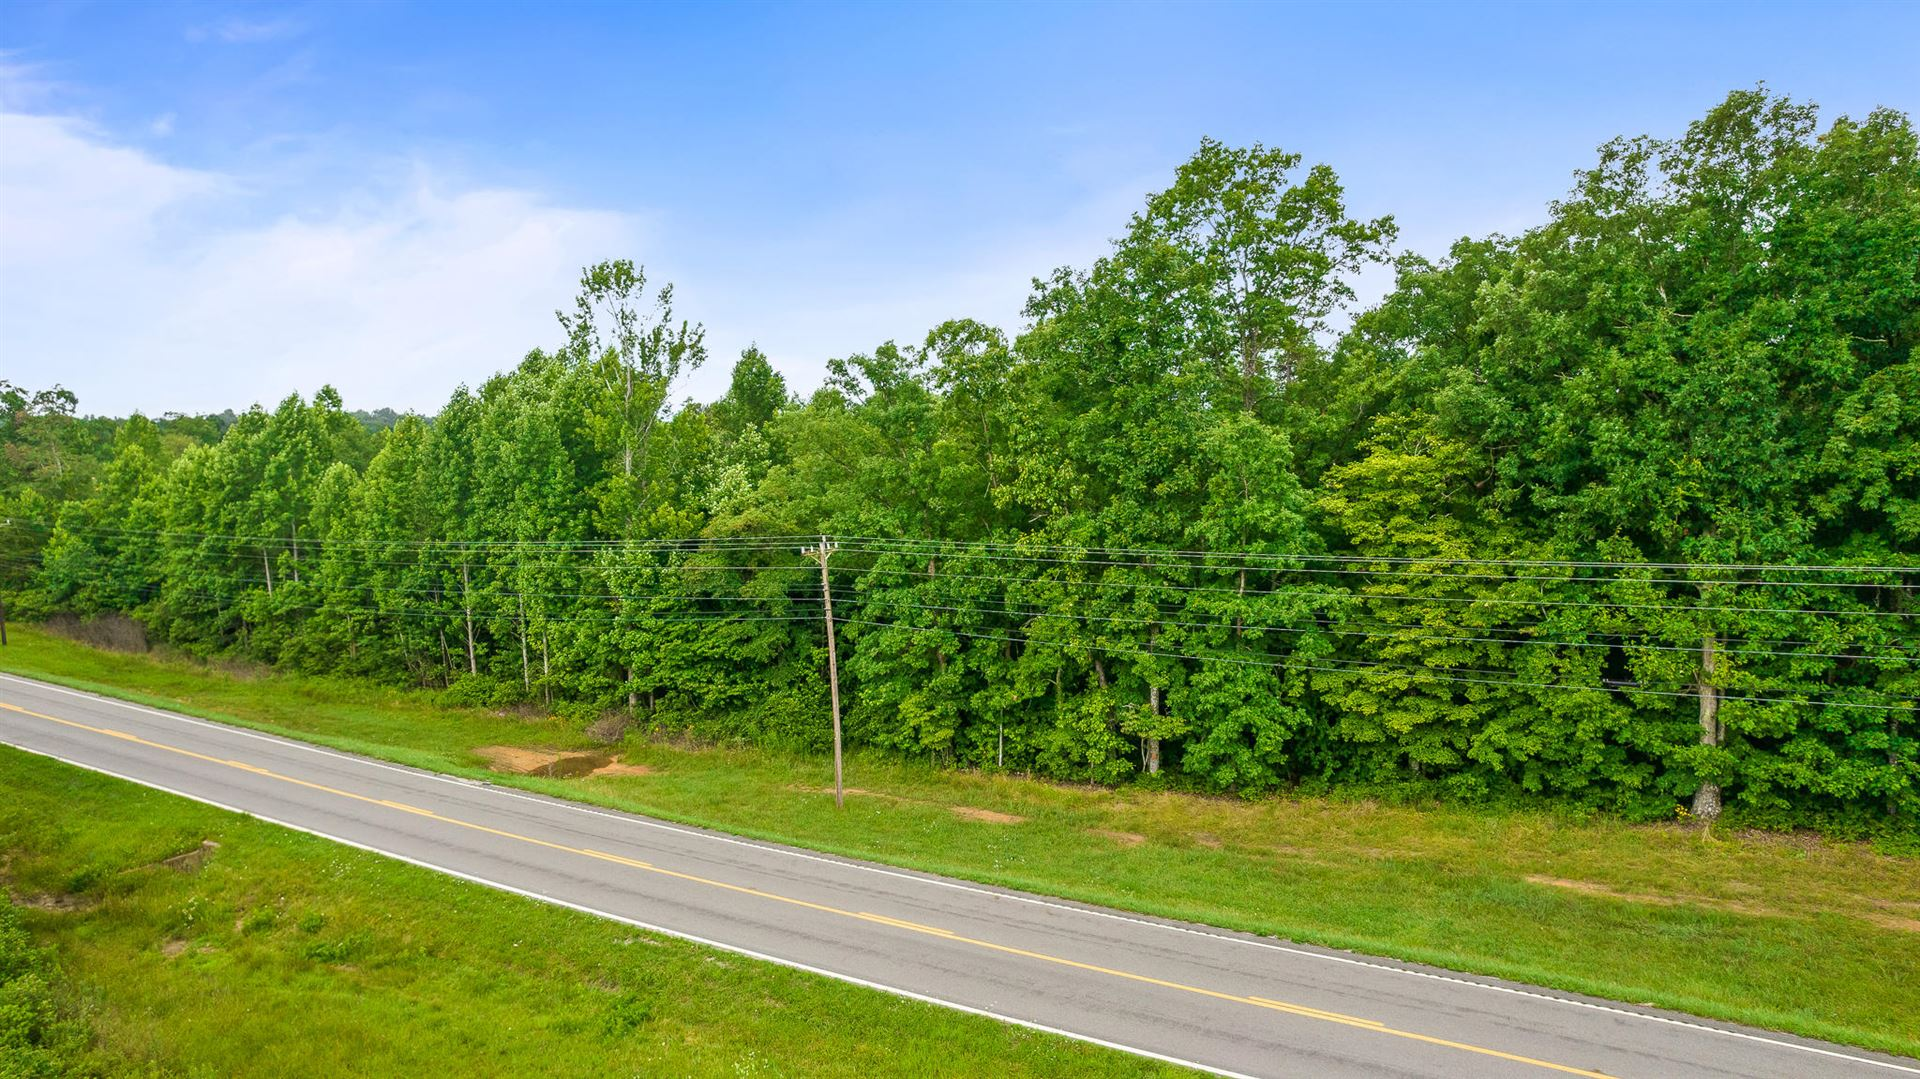 Photo for 0 Hwy 150, Sequatchie, TN 37374 (MLS # 1339988)